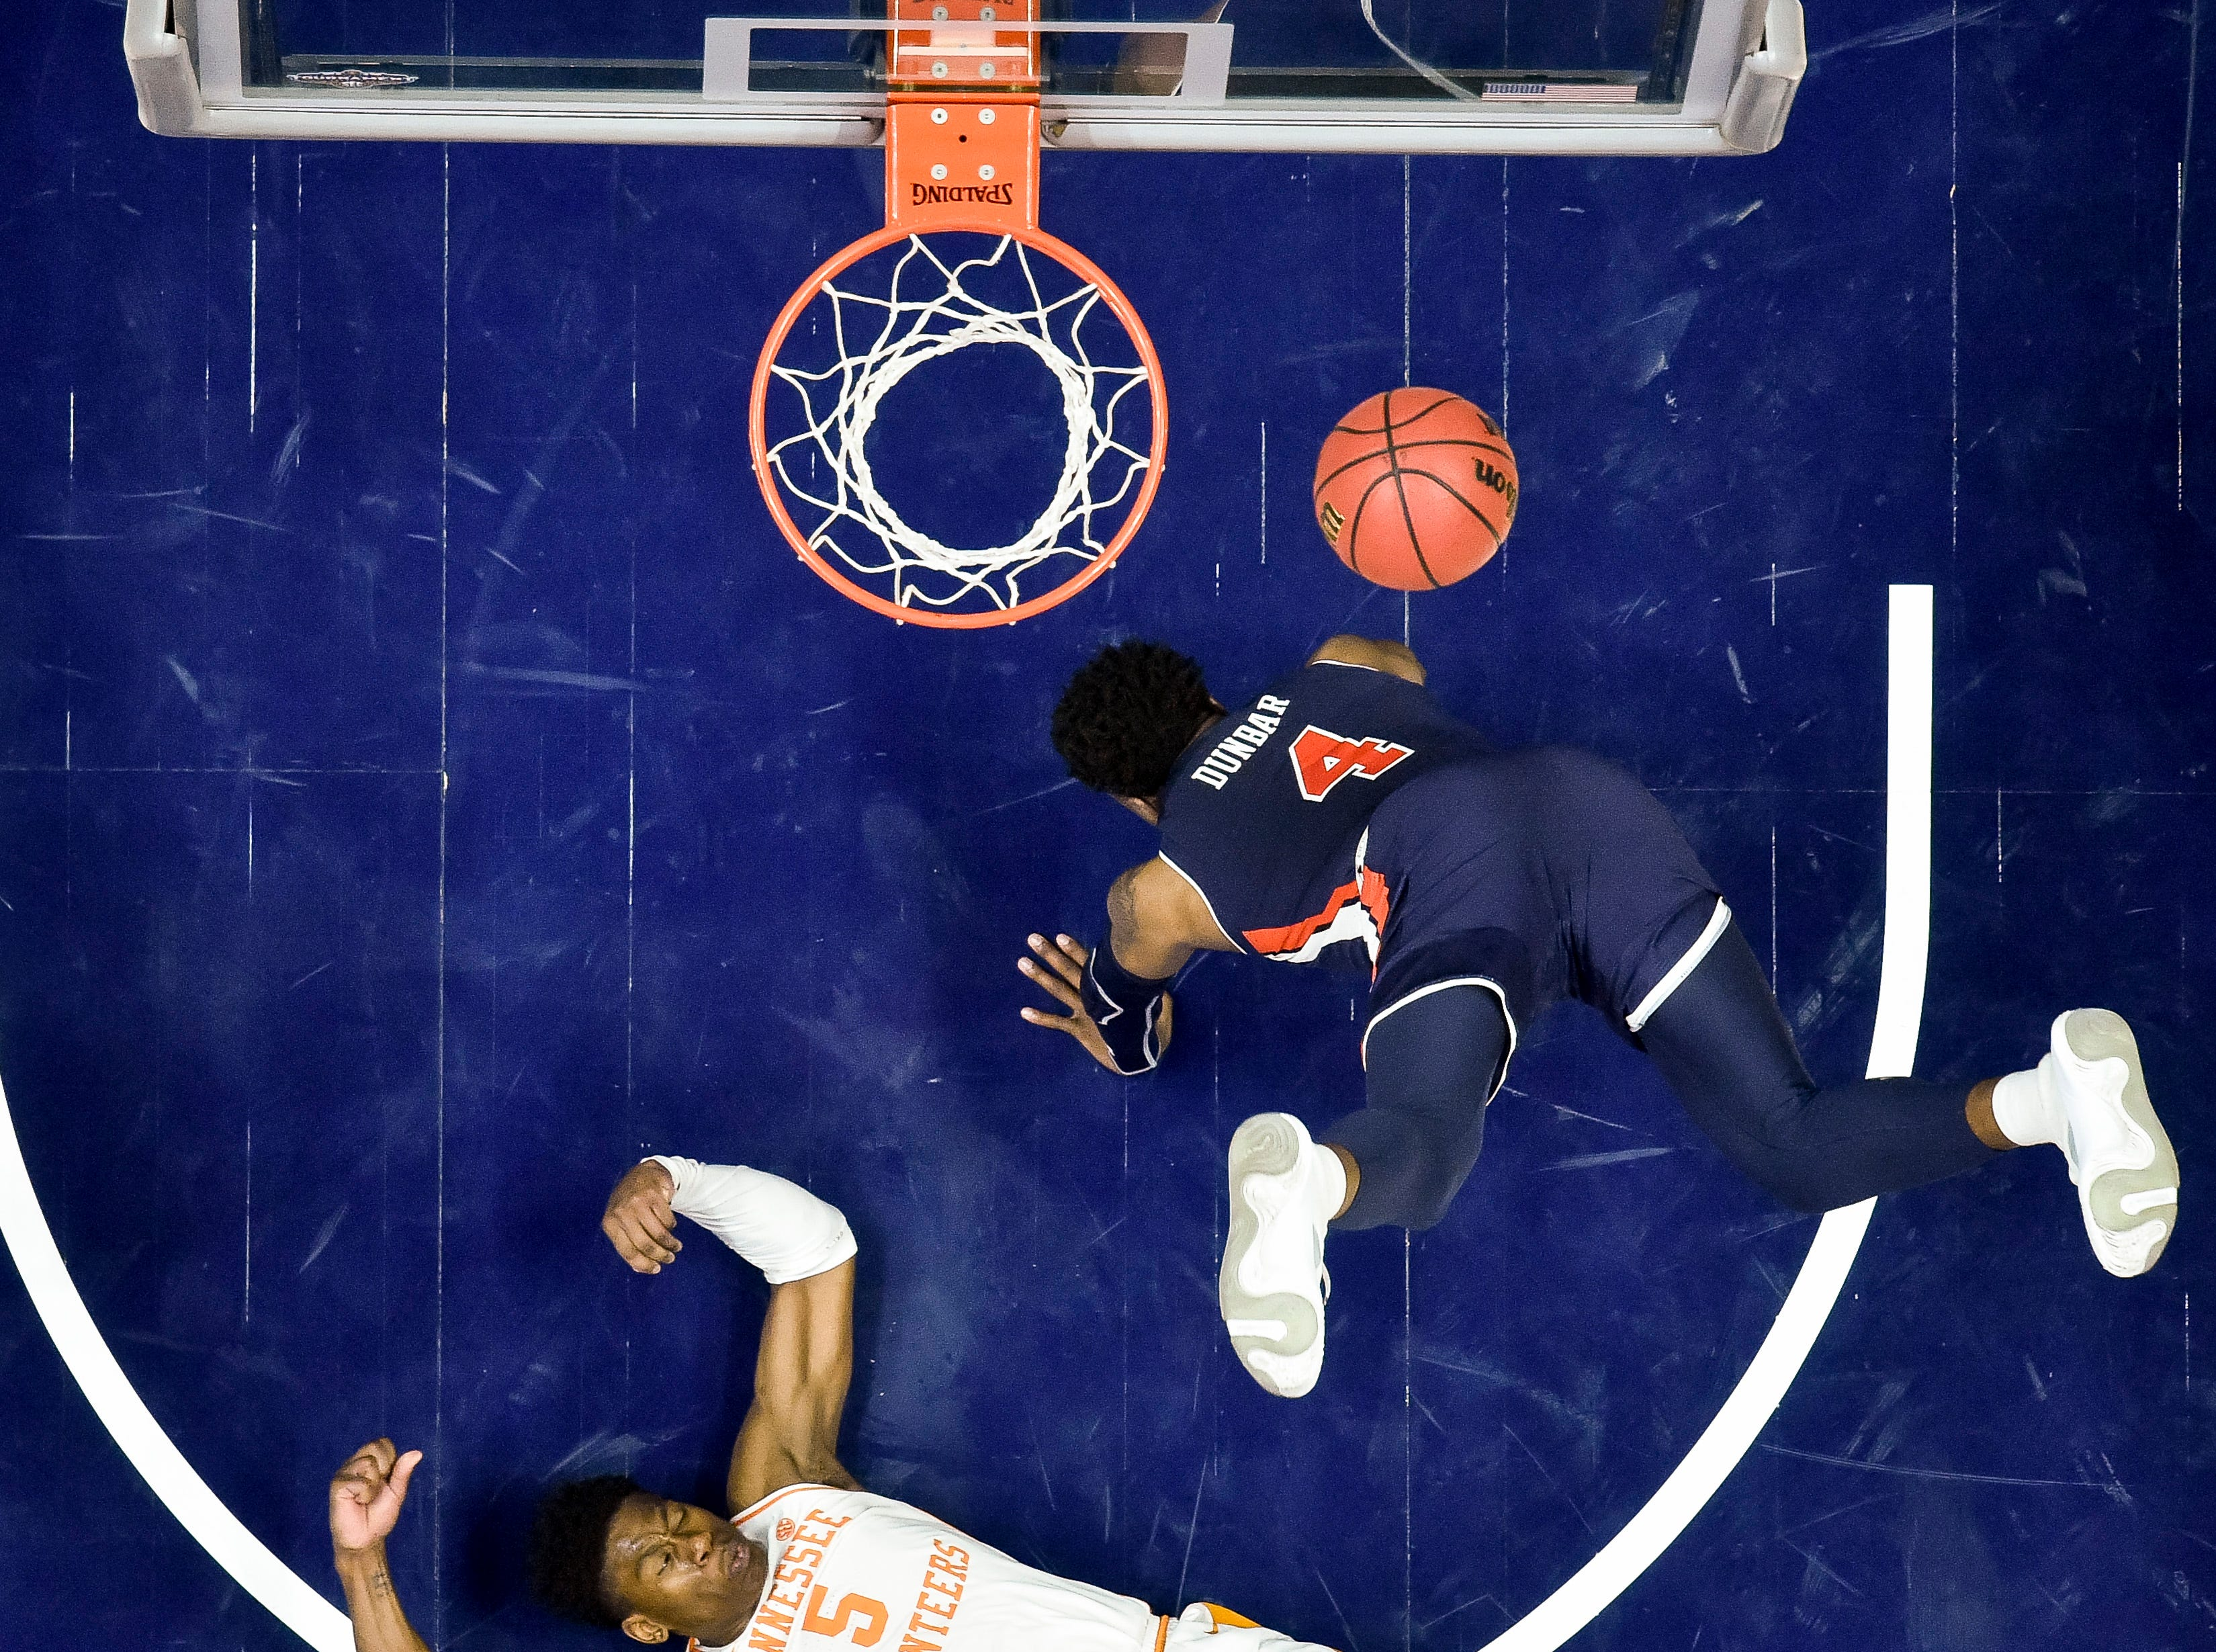 Tennessee guard Admiral Schofield (5) fouls Auburn guard/forward Malik Dunbar (4) during the second half of the SEC Men's Basketball Tournament championship game at Bridgestone Arena in Nashville, Tenn., Sunday, March 17, 2019.